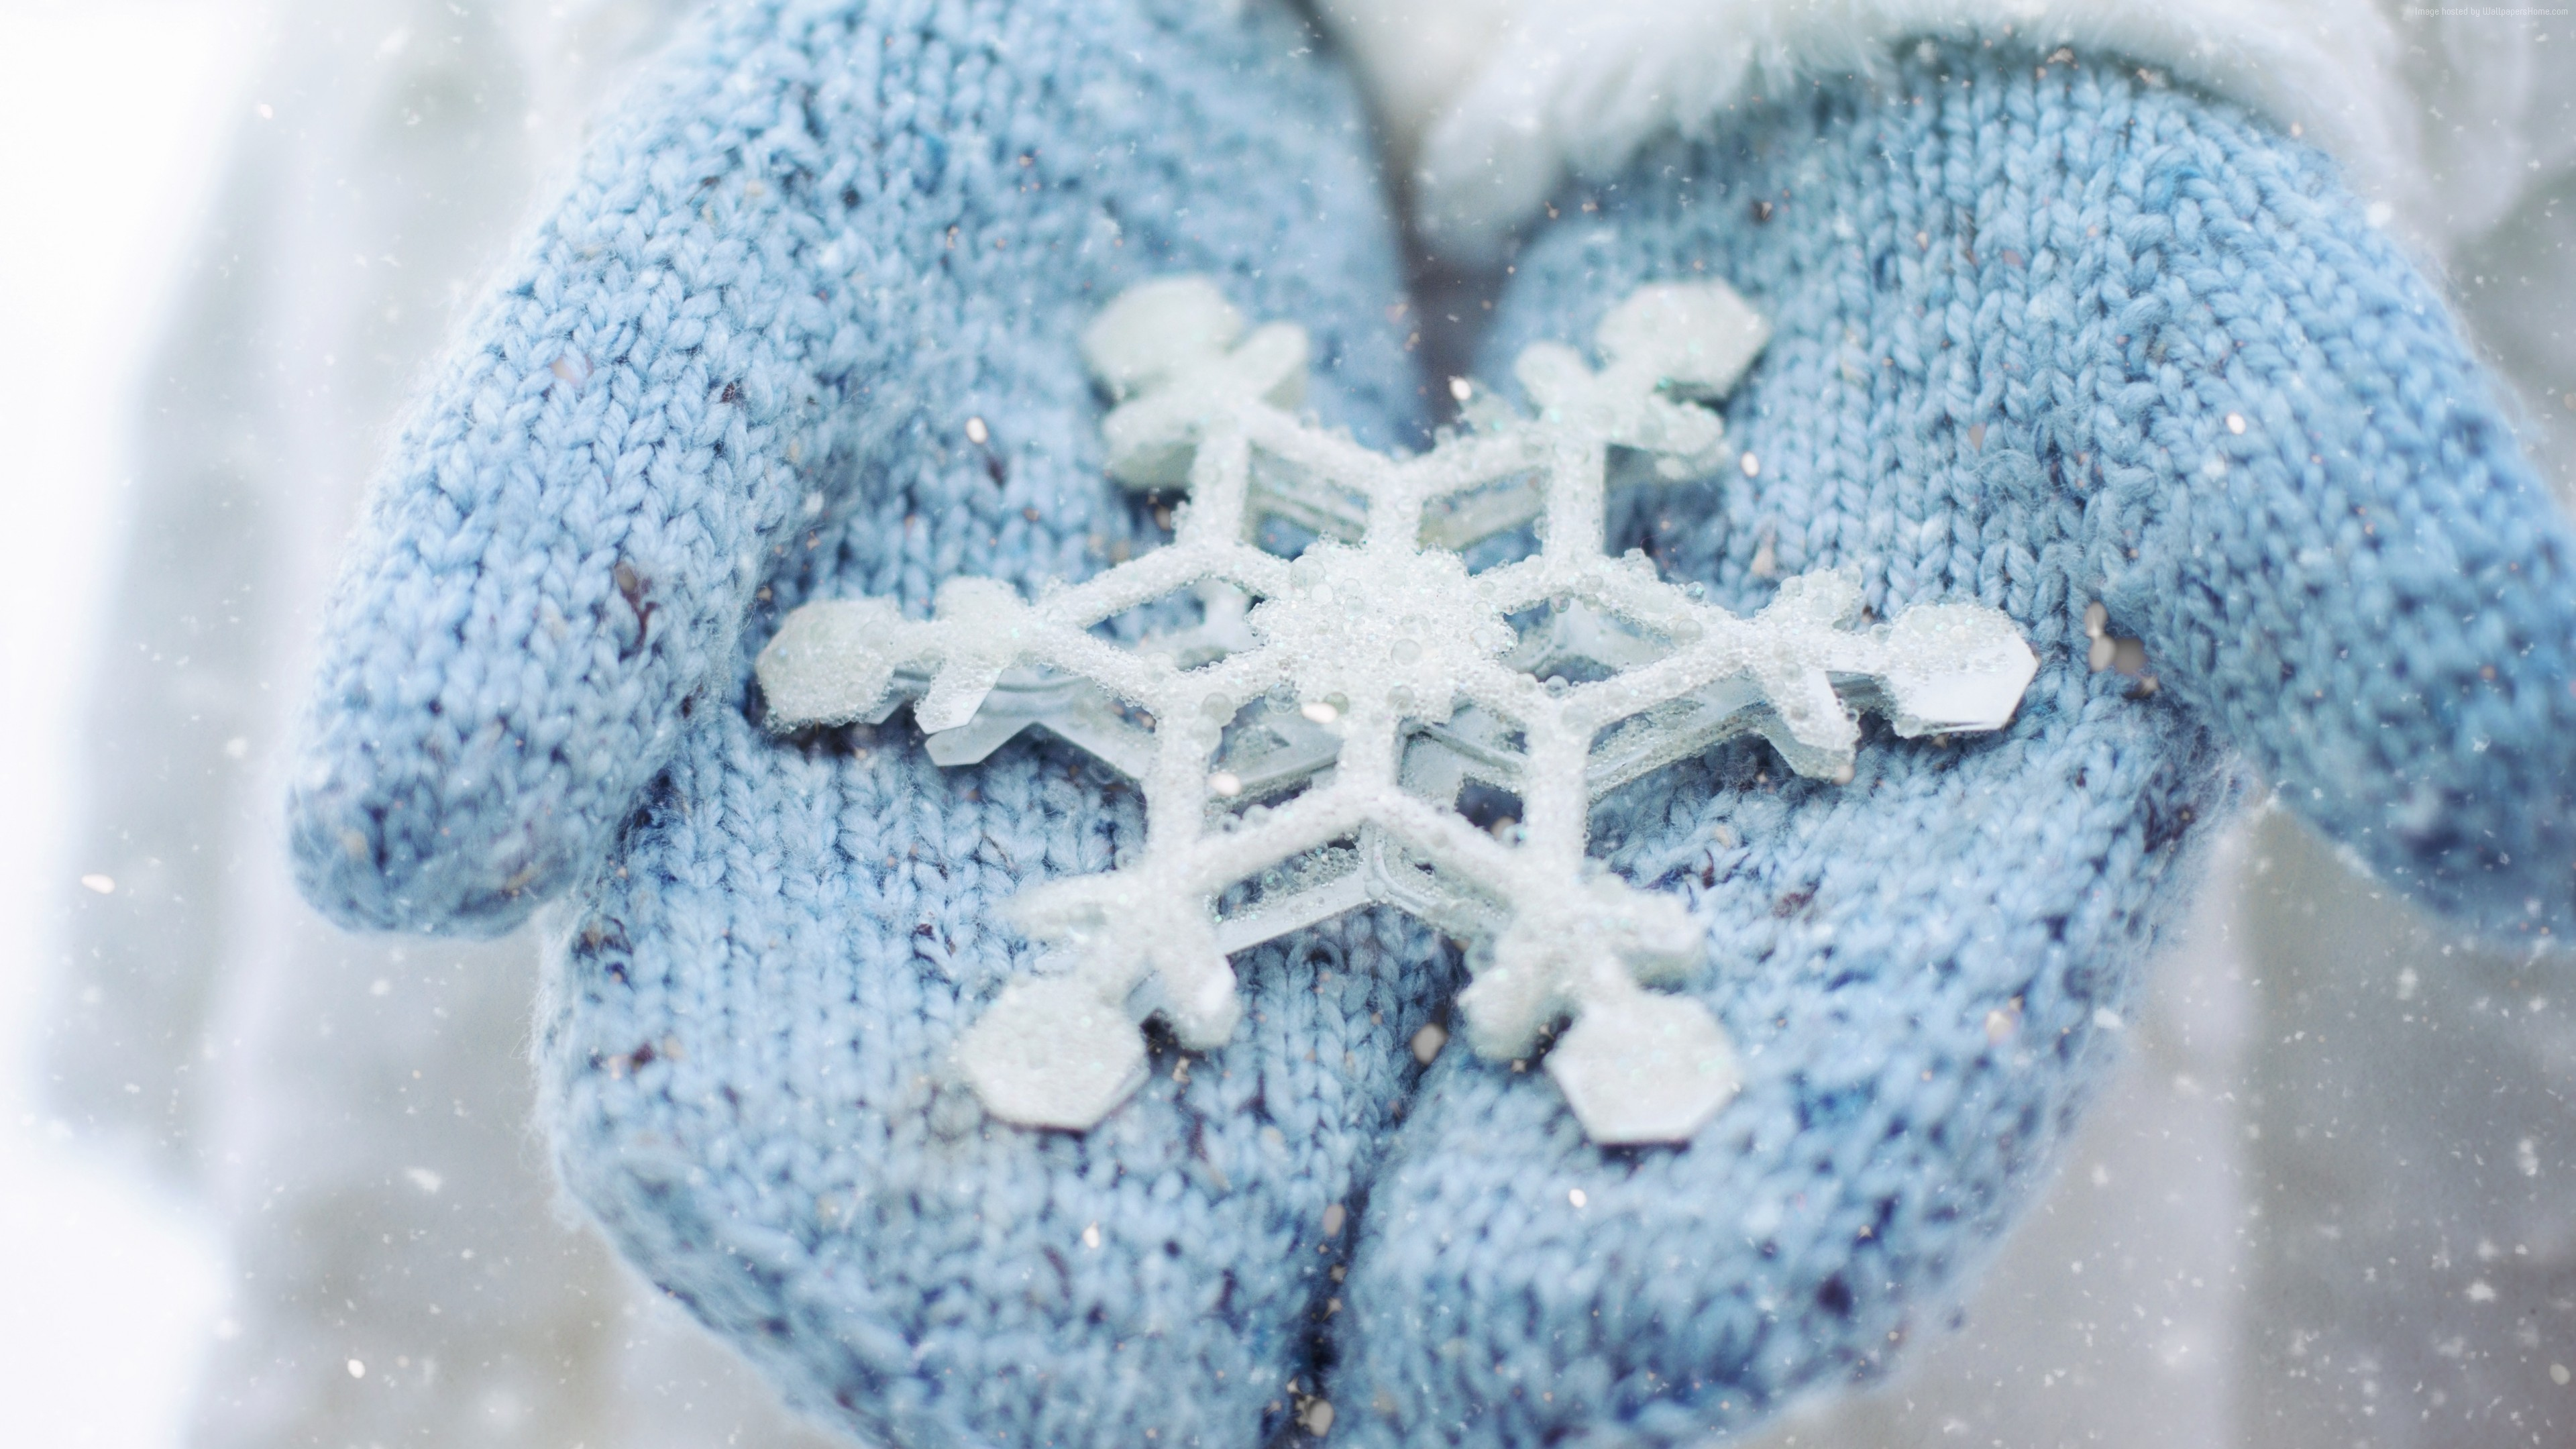 Stock Images hand, snowflake, winter, 5k, Stock Images